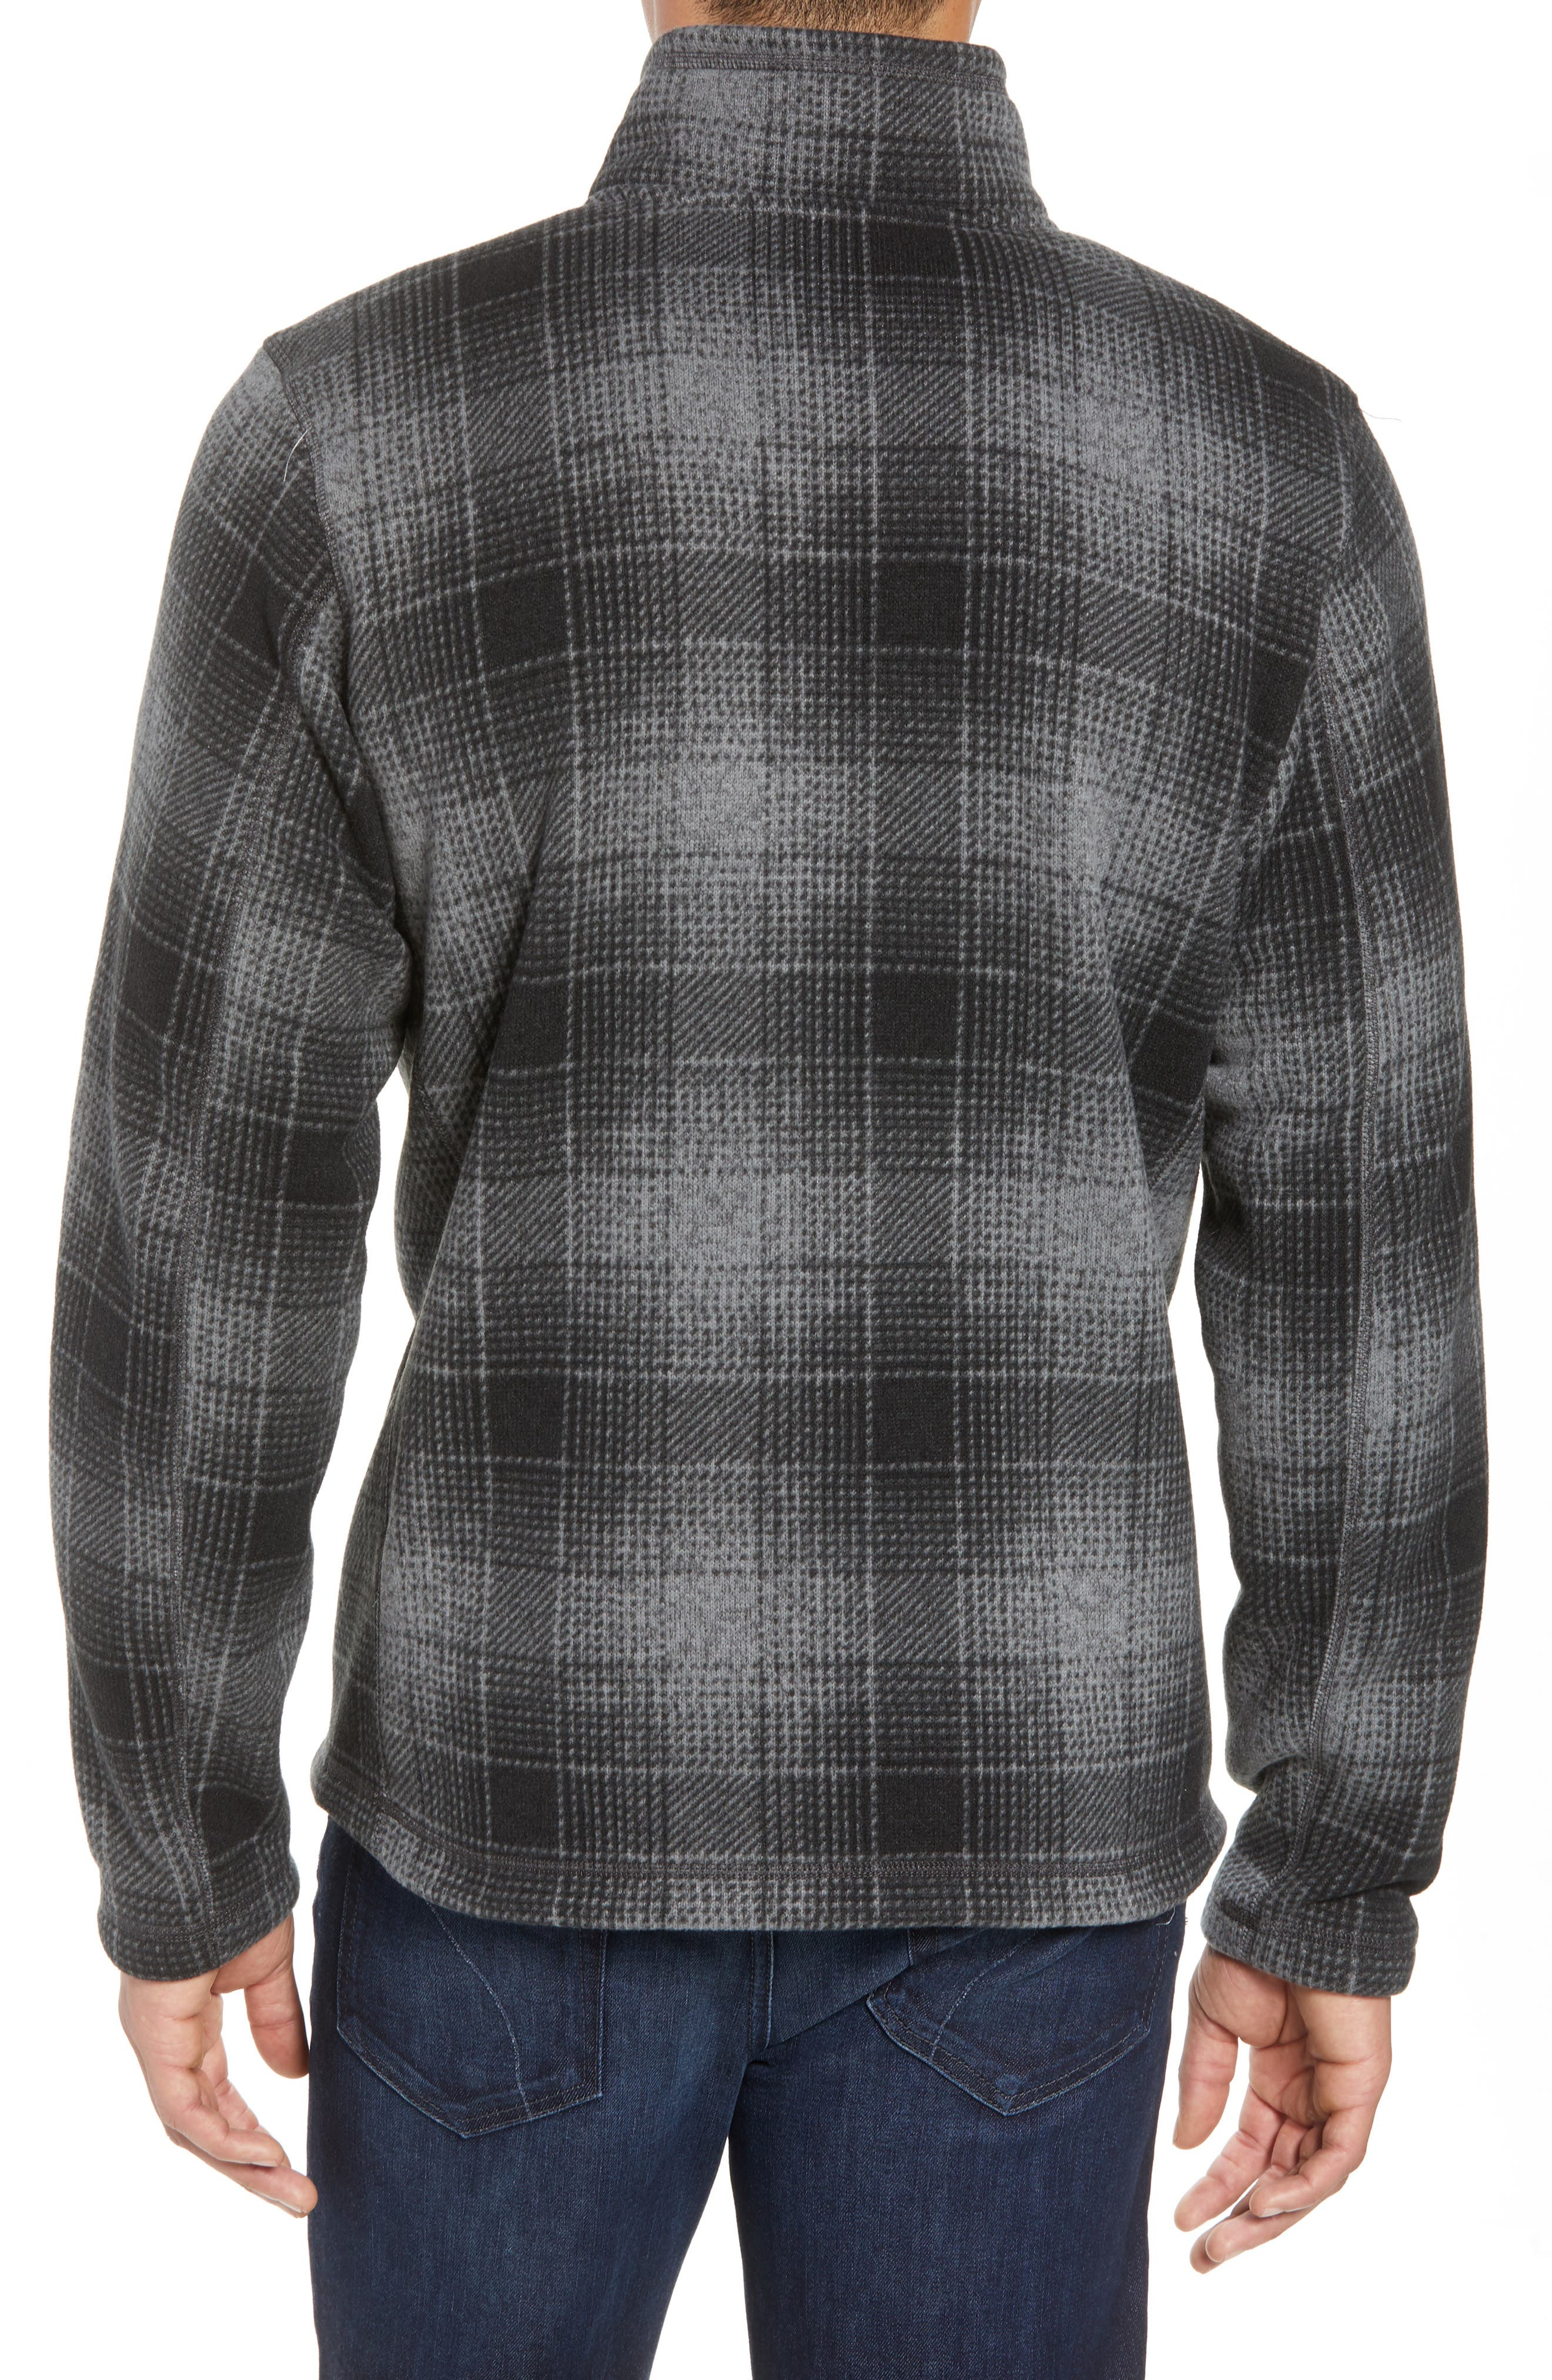 Novelty Gordon Lyons Plaid Pullover,                             Alternate thumbnail 2, color,                             MONUMENT GREY OMBRE PLAID